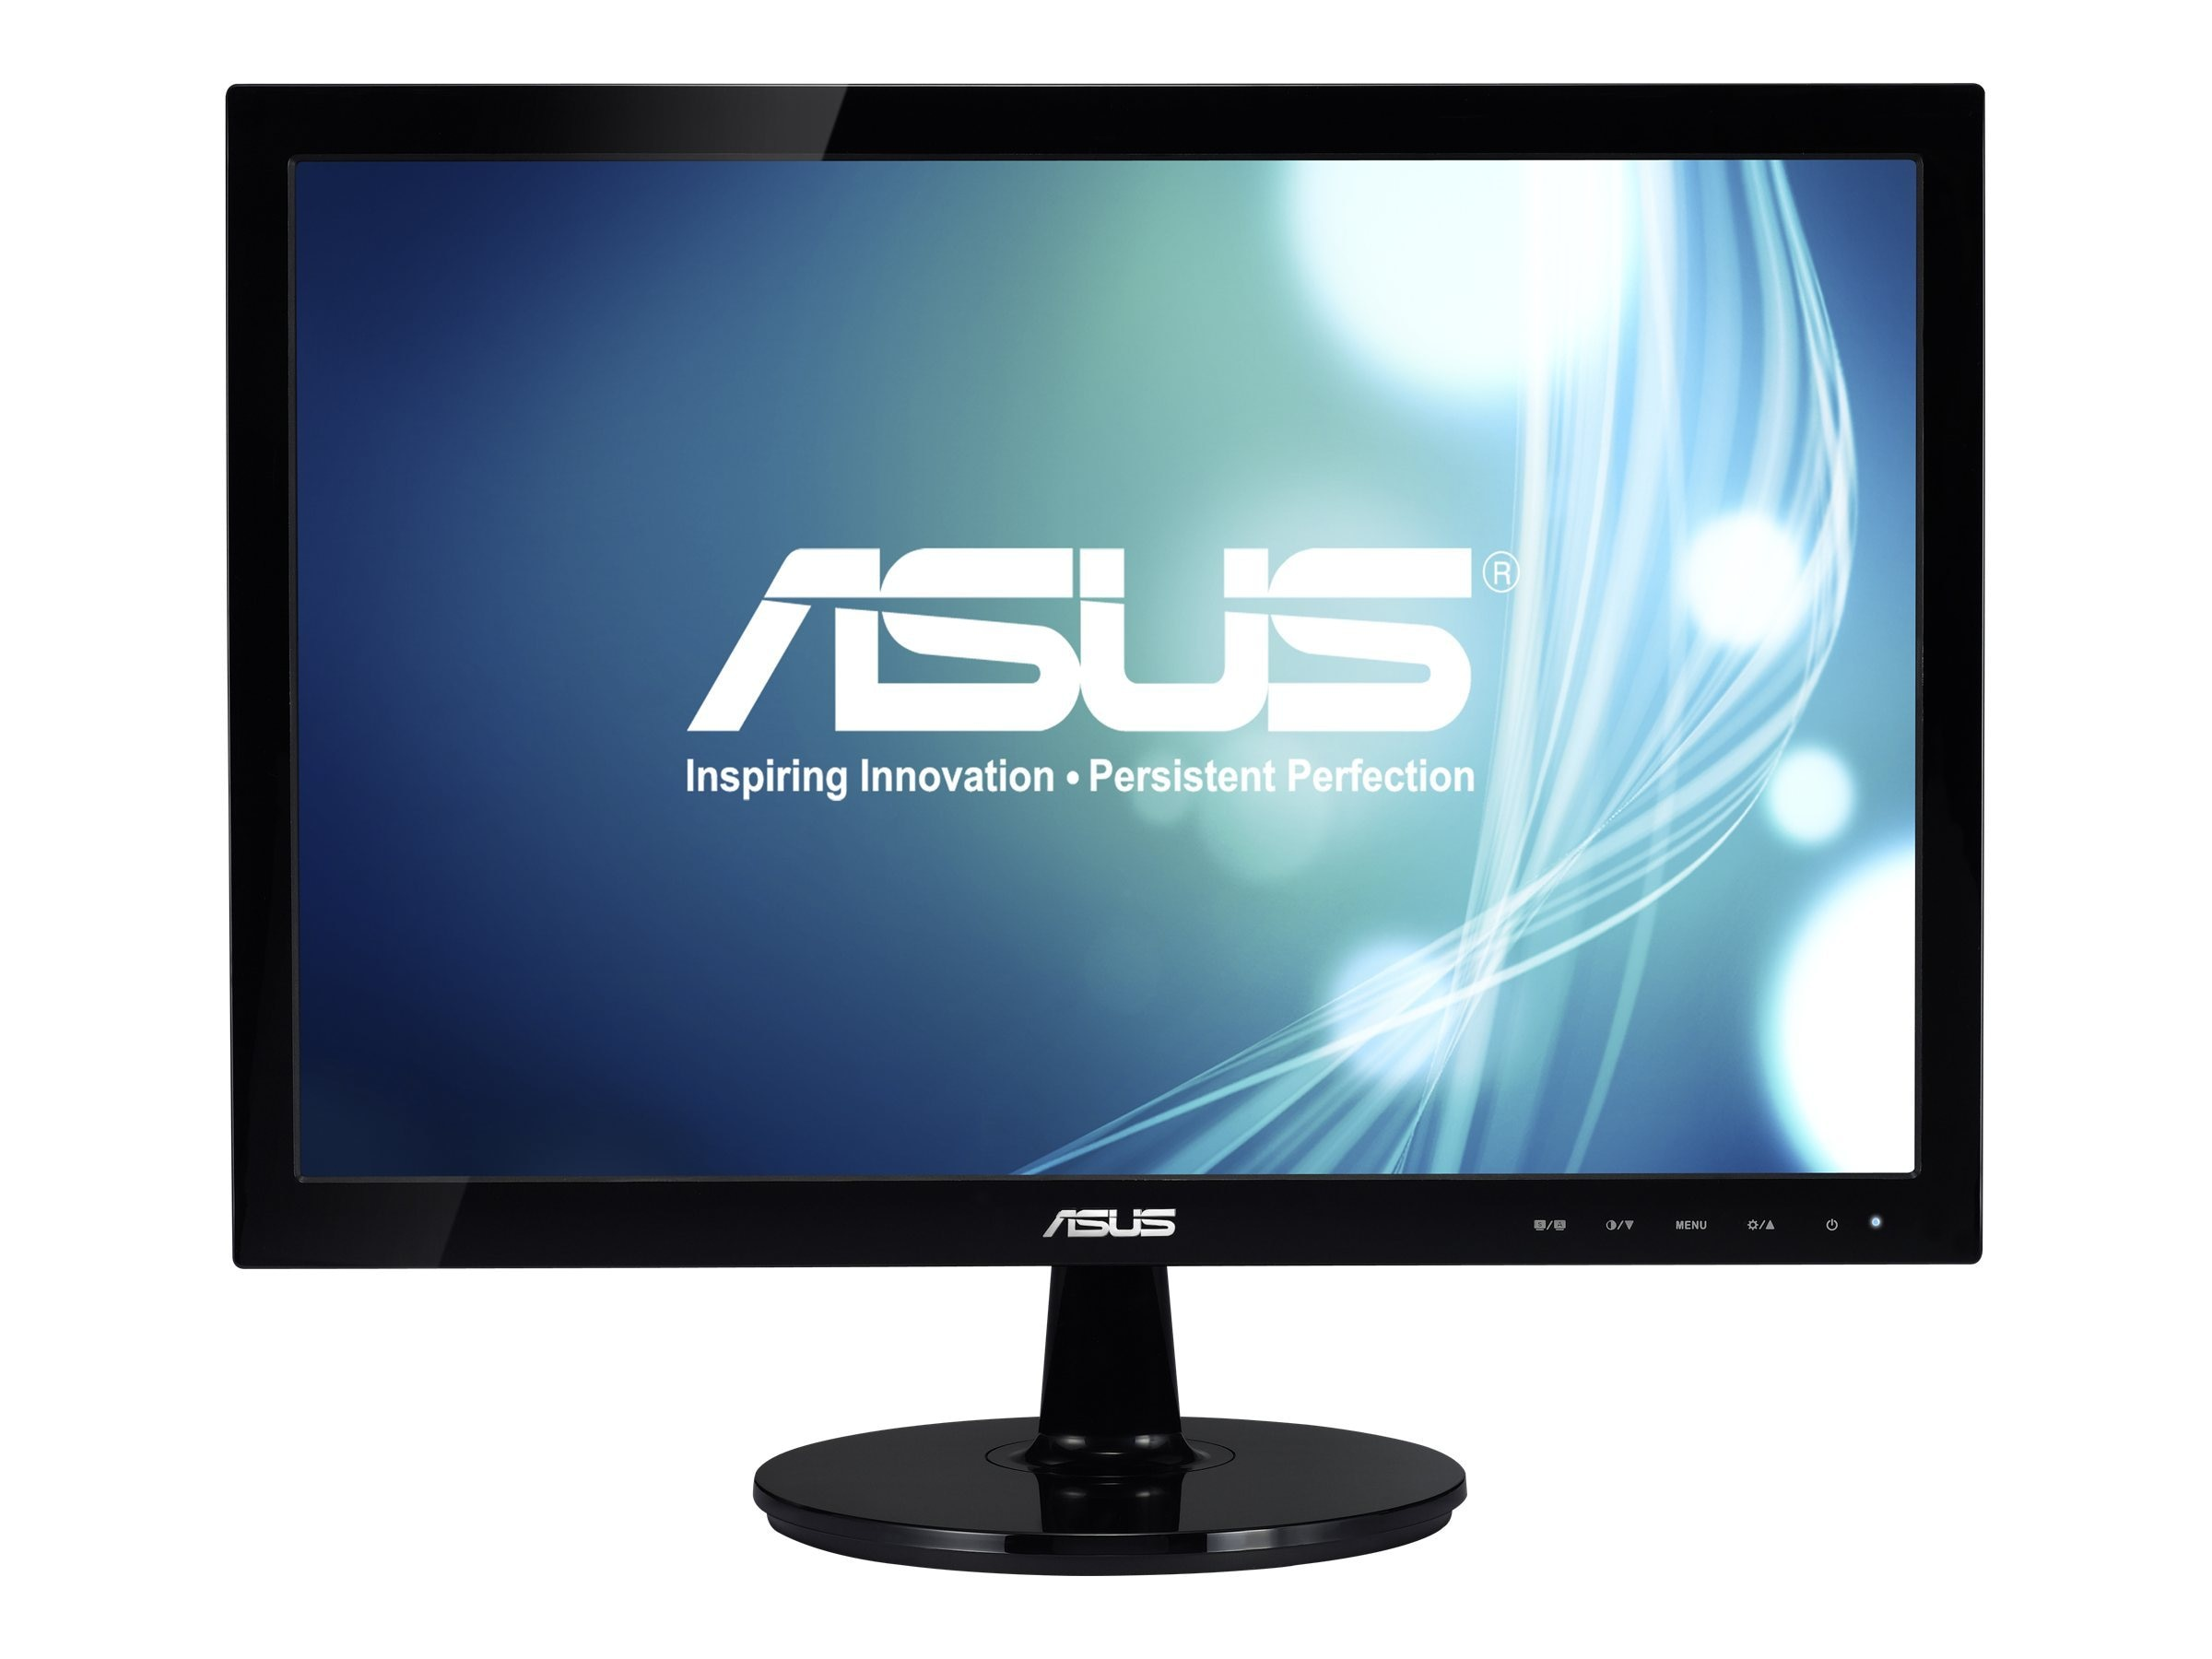 Open Box Asus 19 VS197D-P Widescreen LED-LCD Monitor, Black